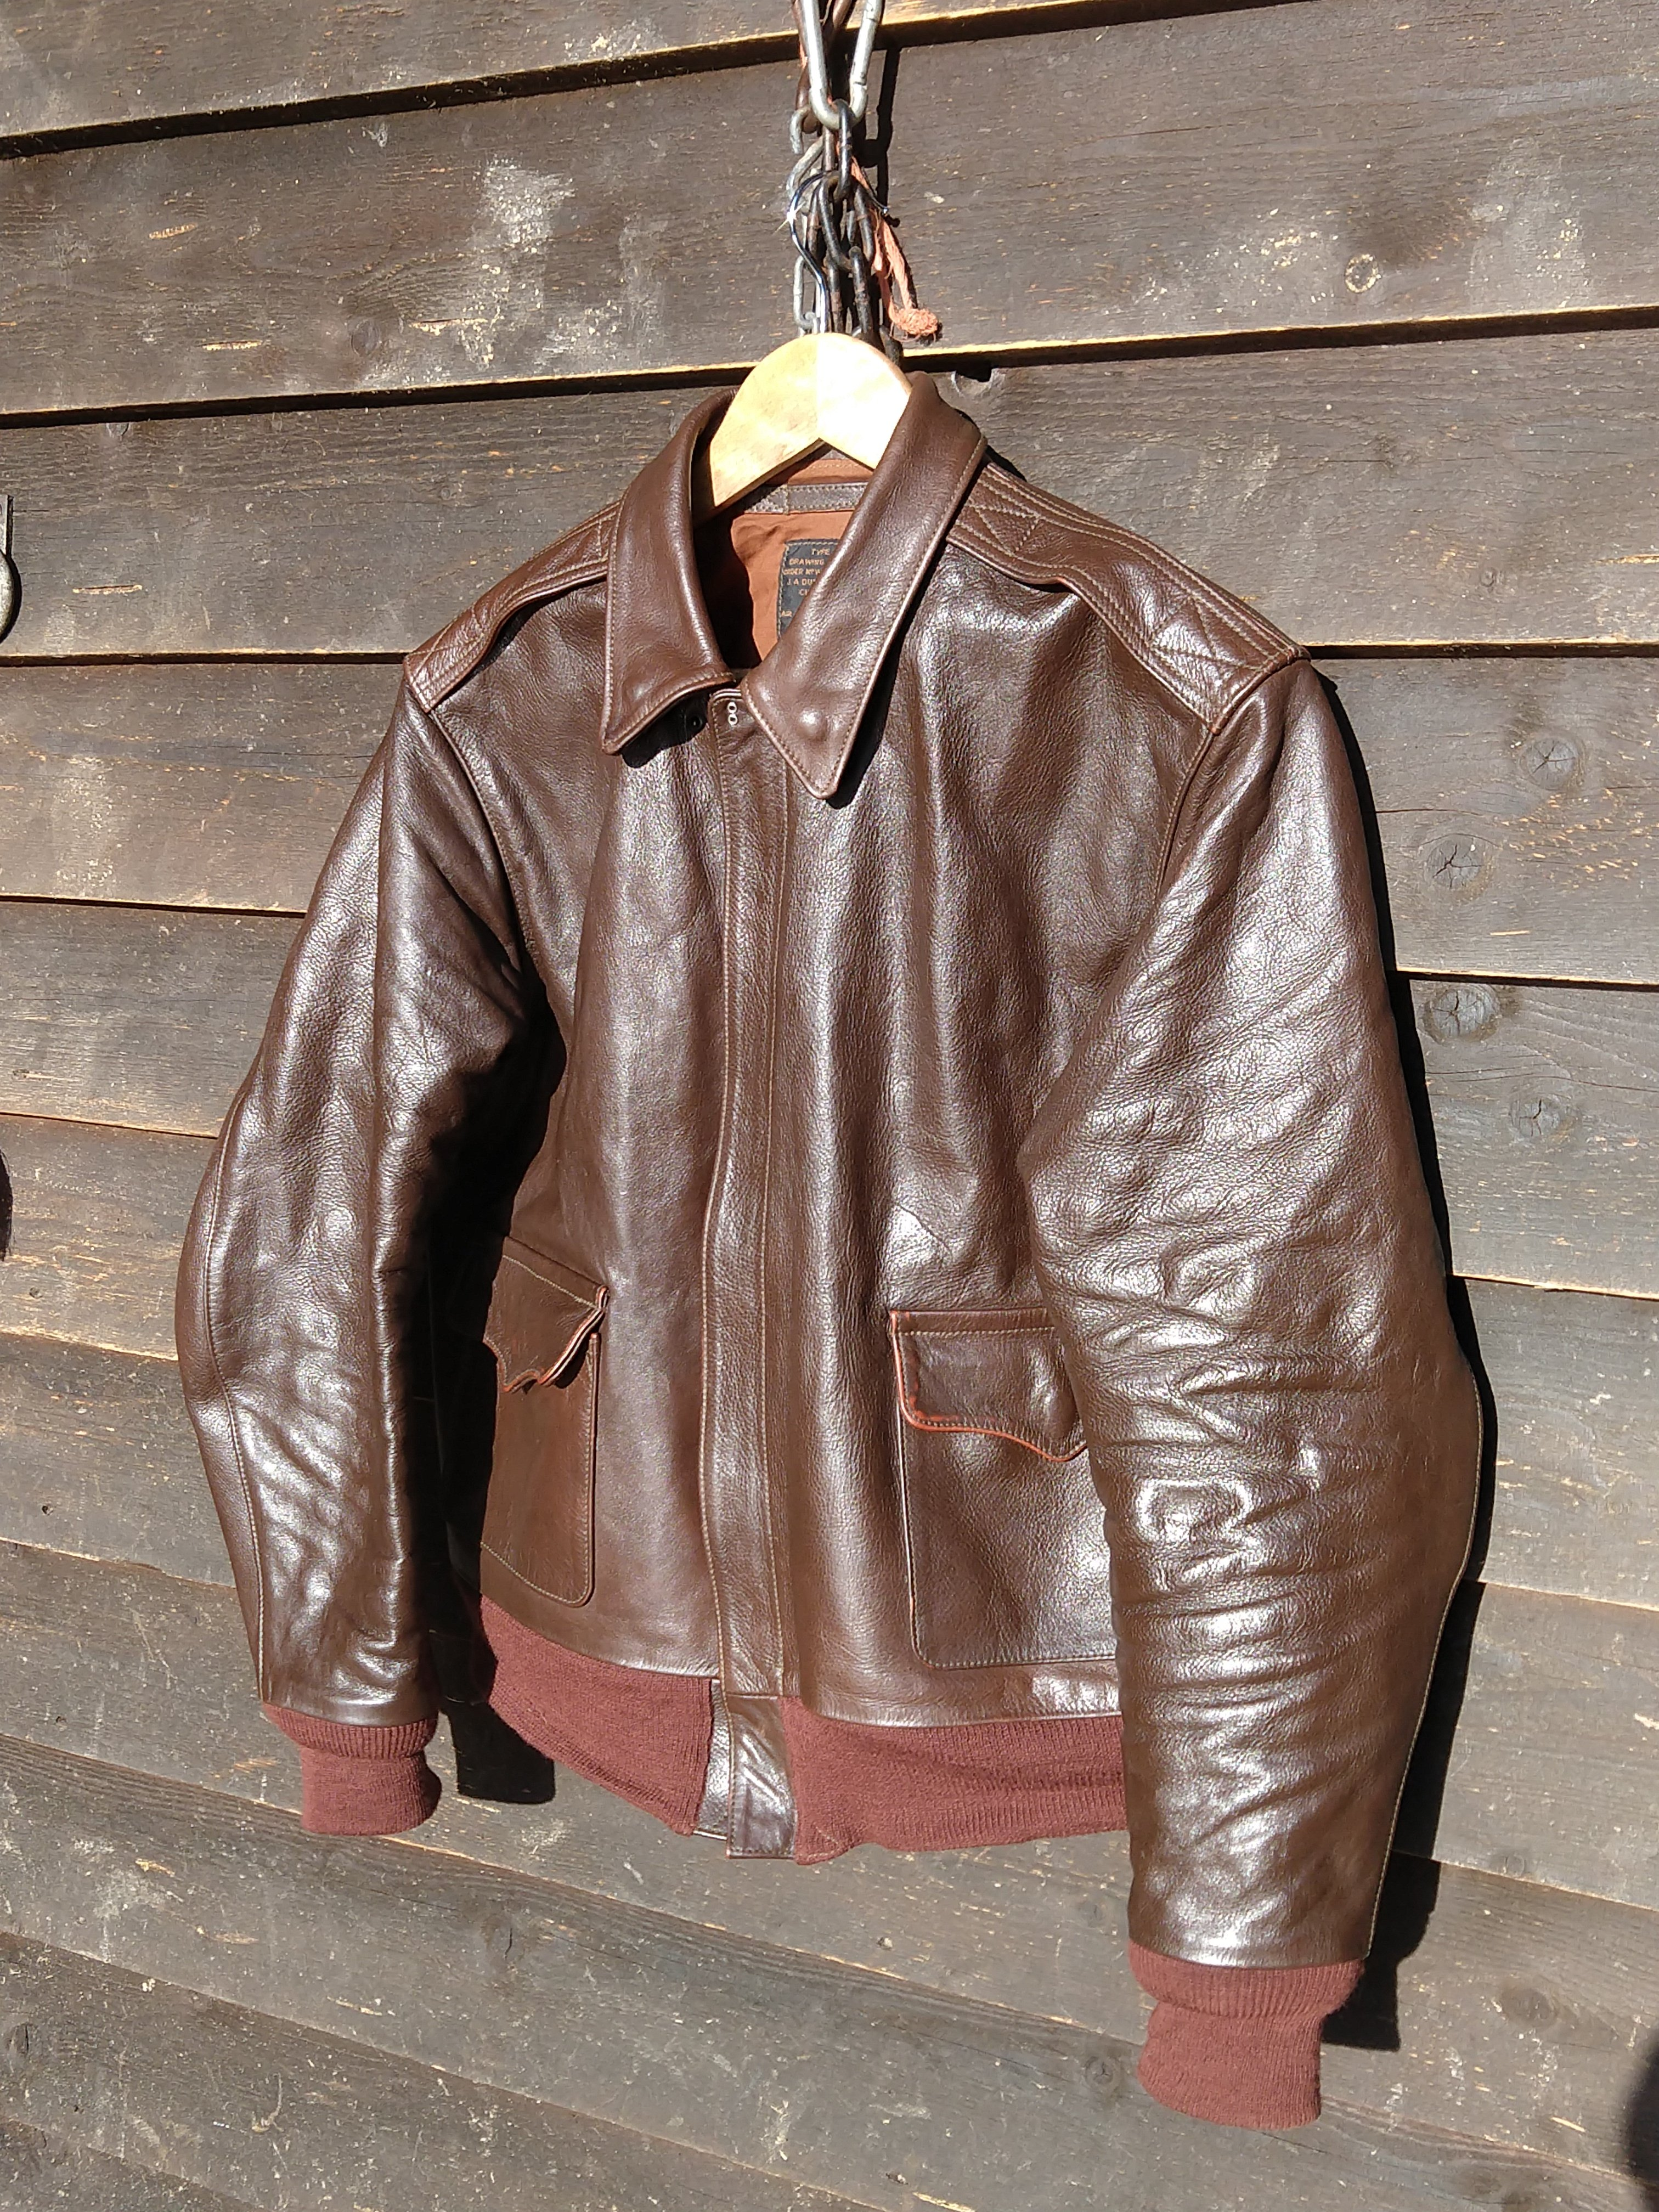 Platon Dubow seal? | Page 23 | Vintage Leather Jackets Forum